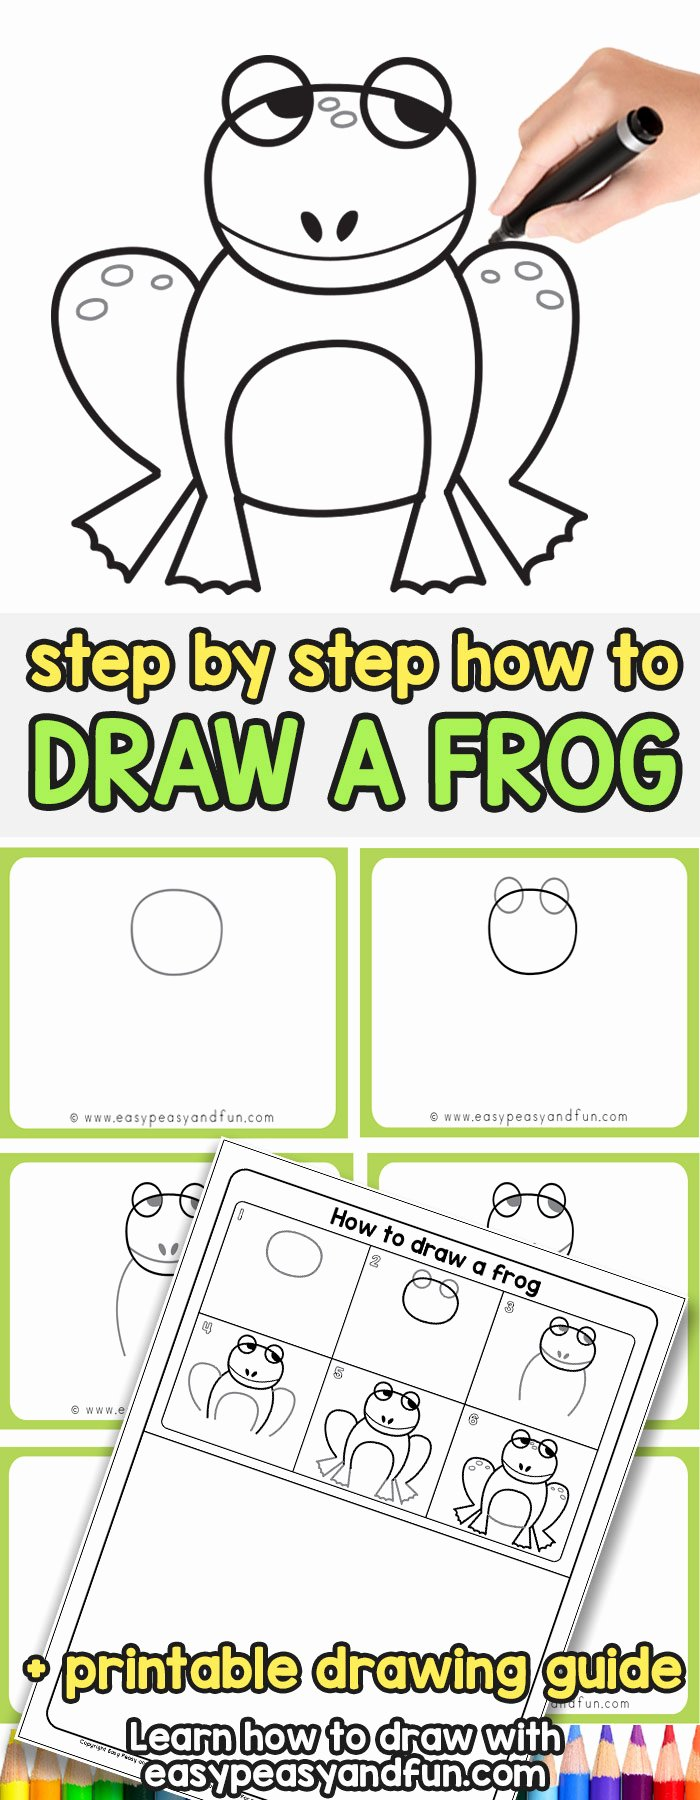 How to Draw A Frog Step by Step Drawing Instructions